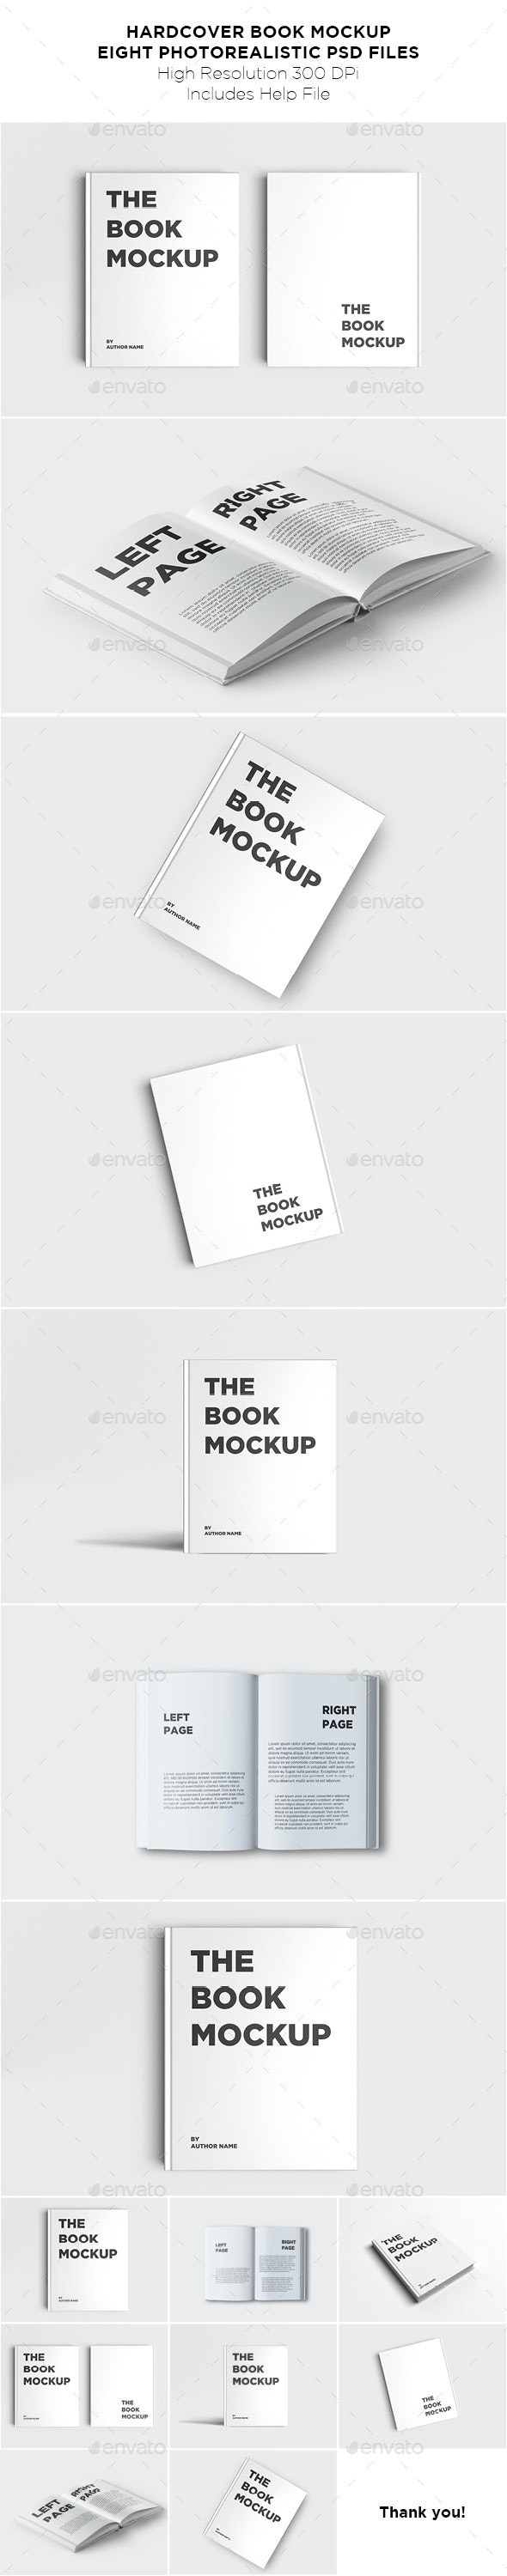 Hardcover Book Mockup - Books Print